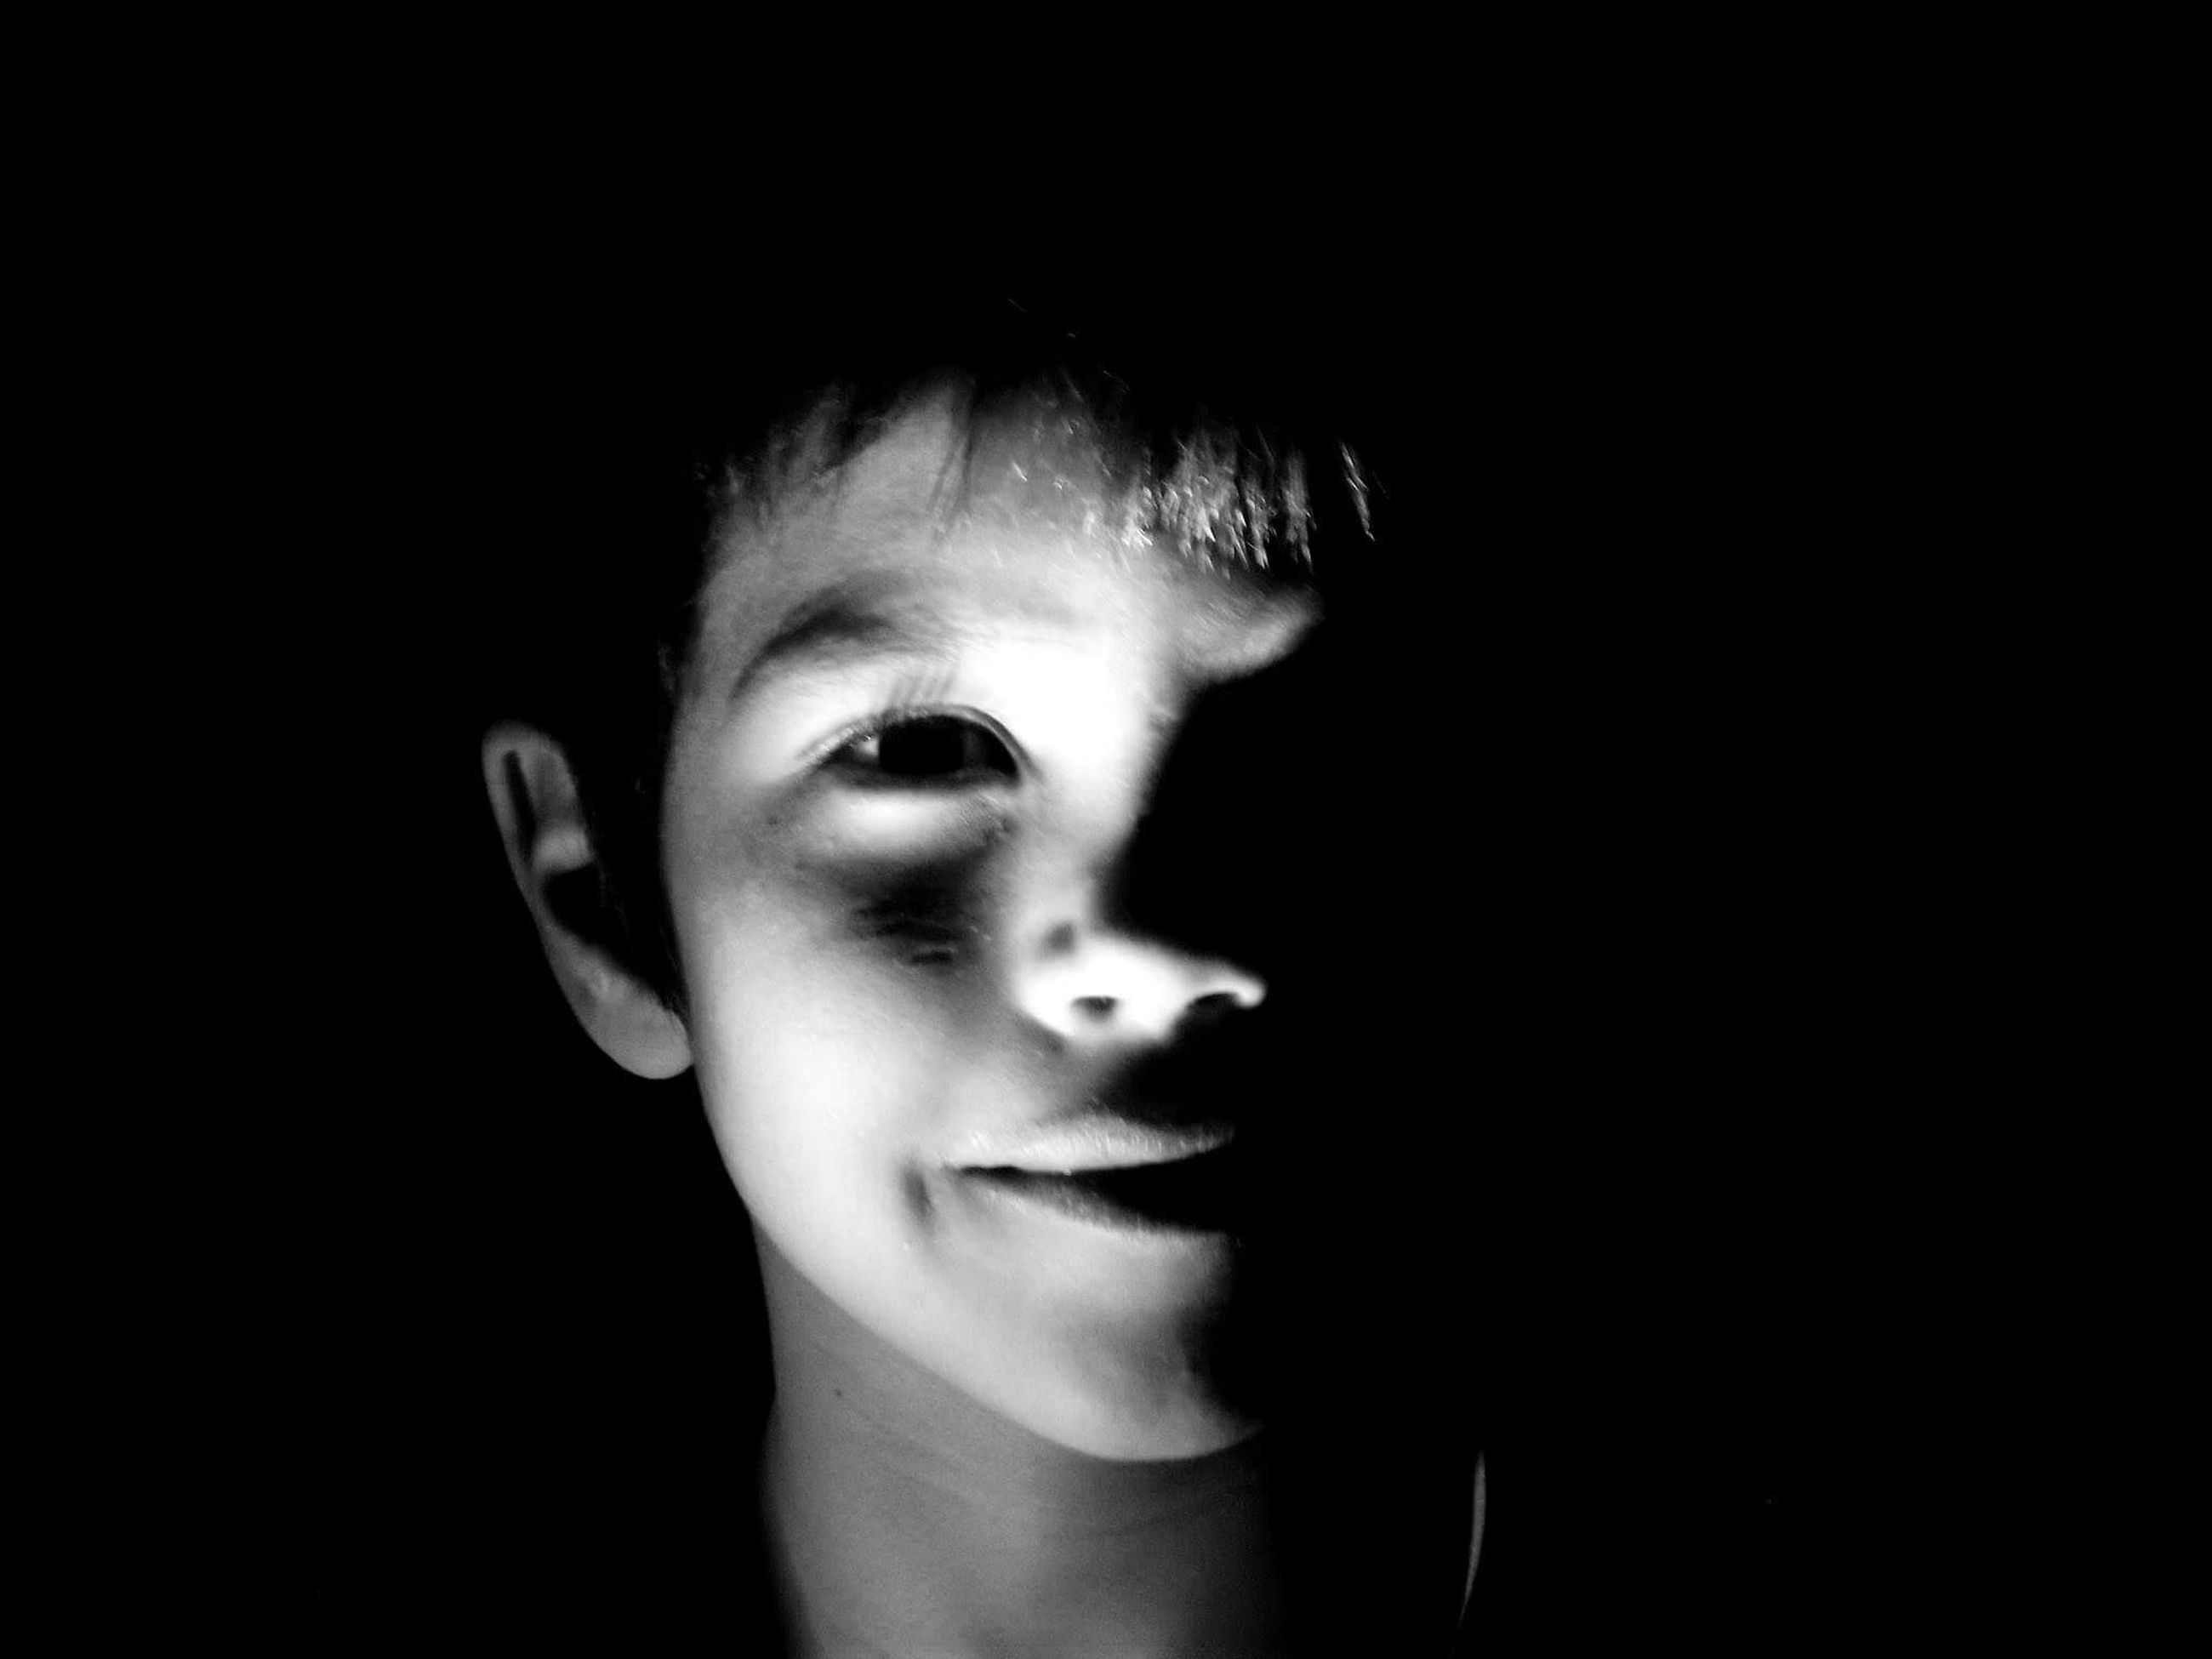 childhood, one person, real people, boys, close-up, indoors, black background, day, people